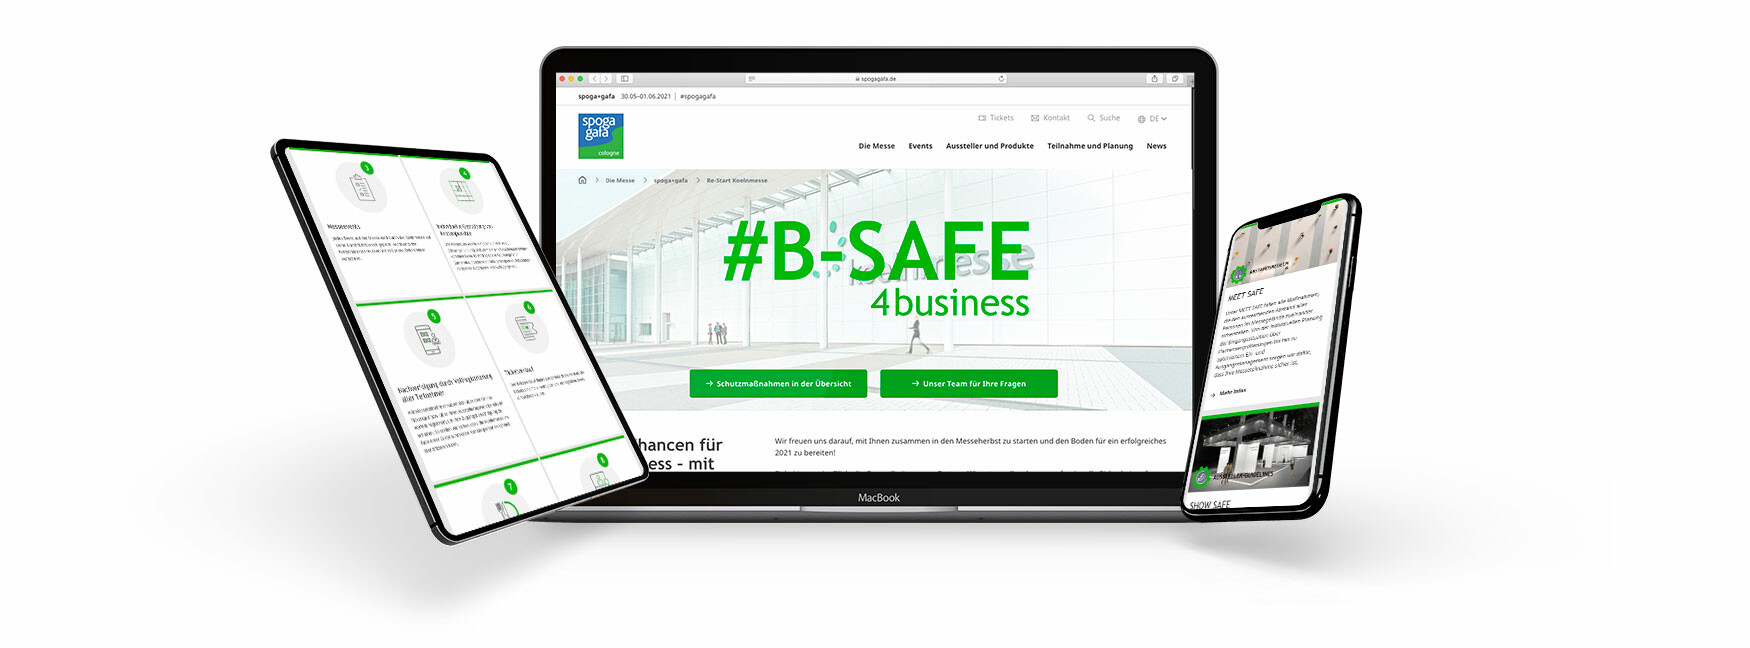 Campaigns B-SAFE4business Koelnmesse